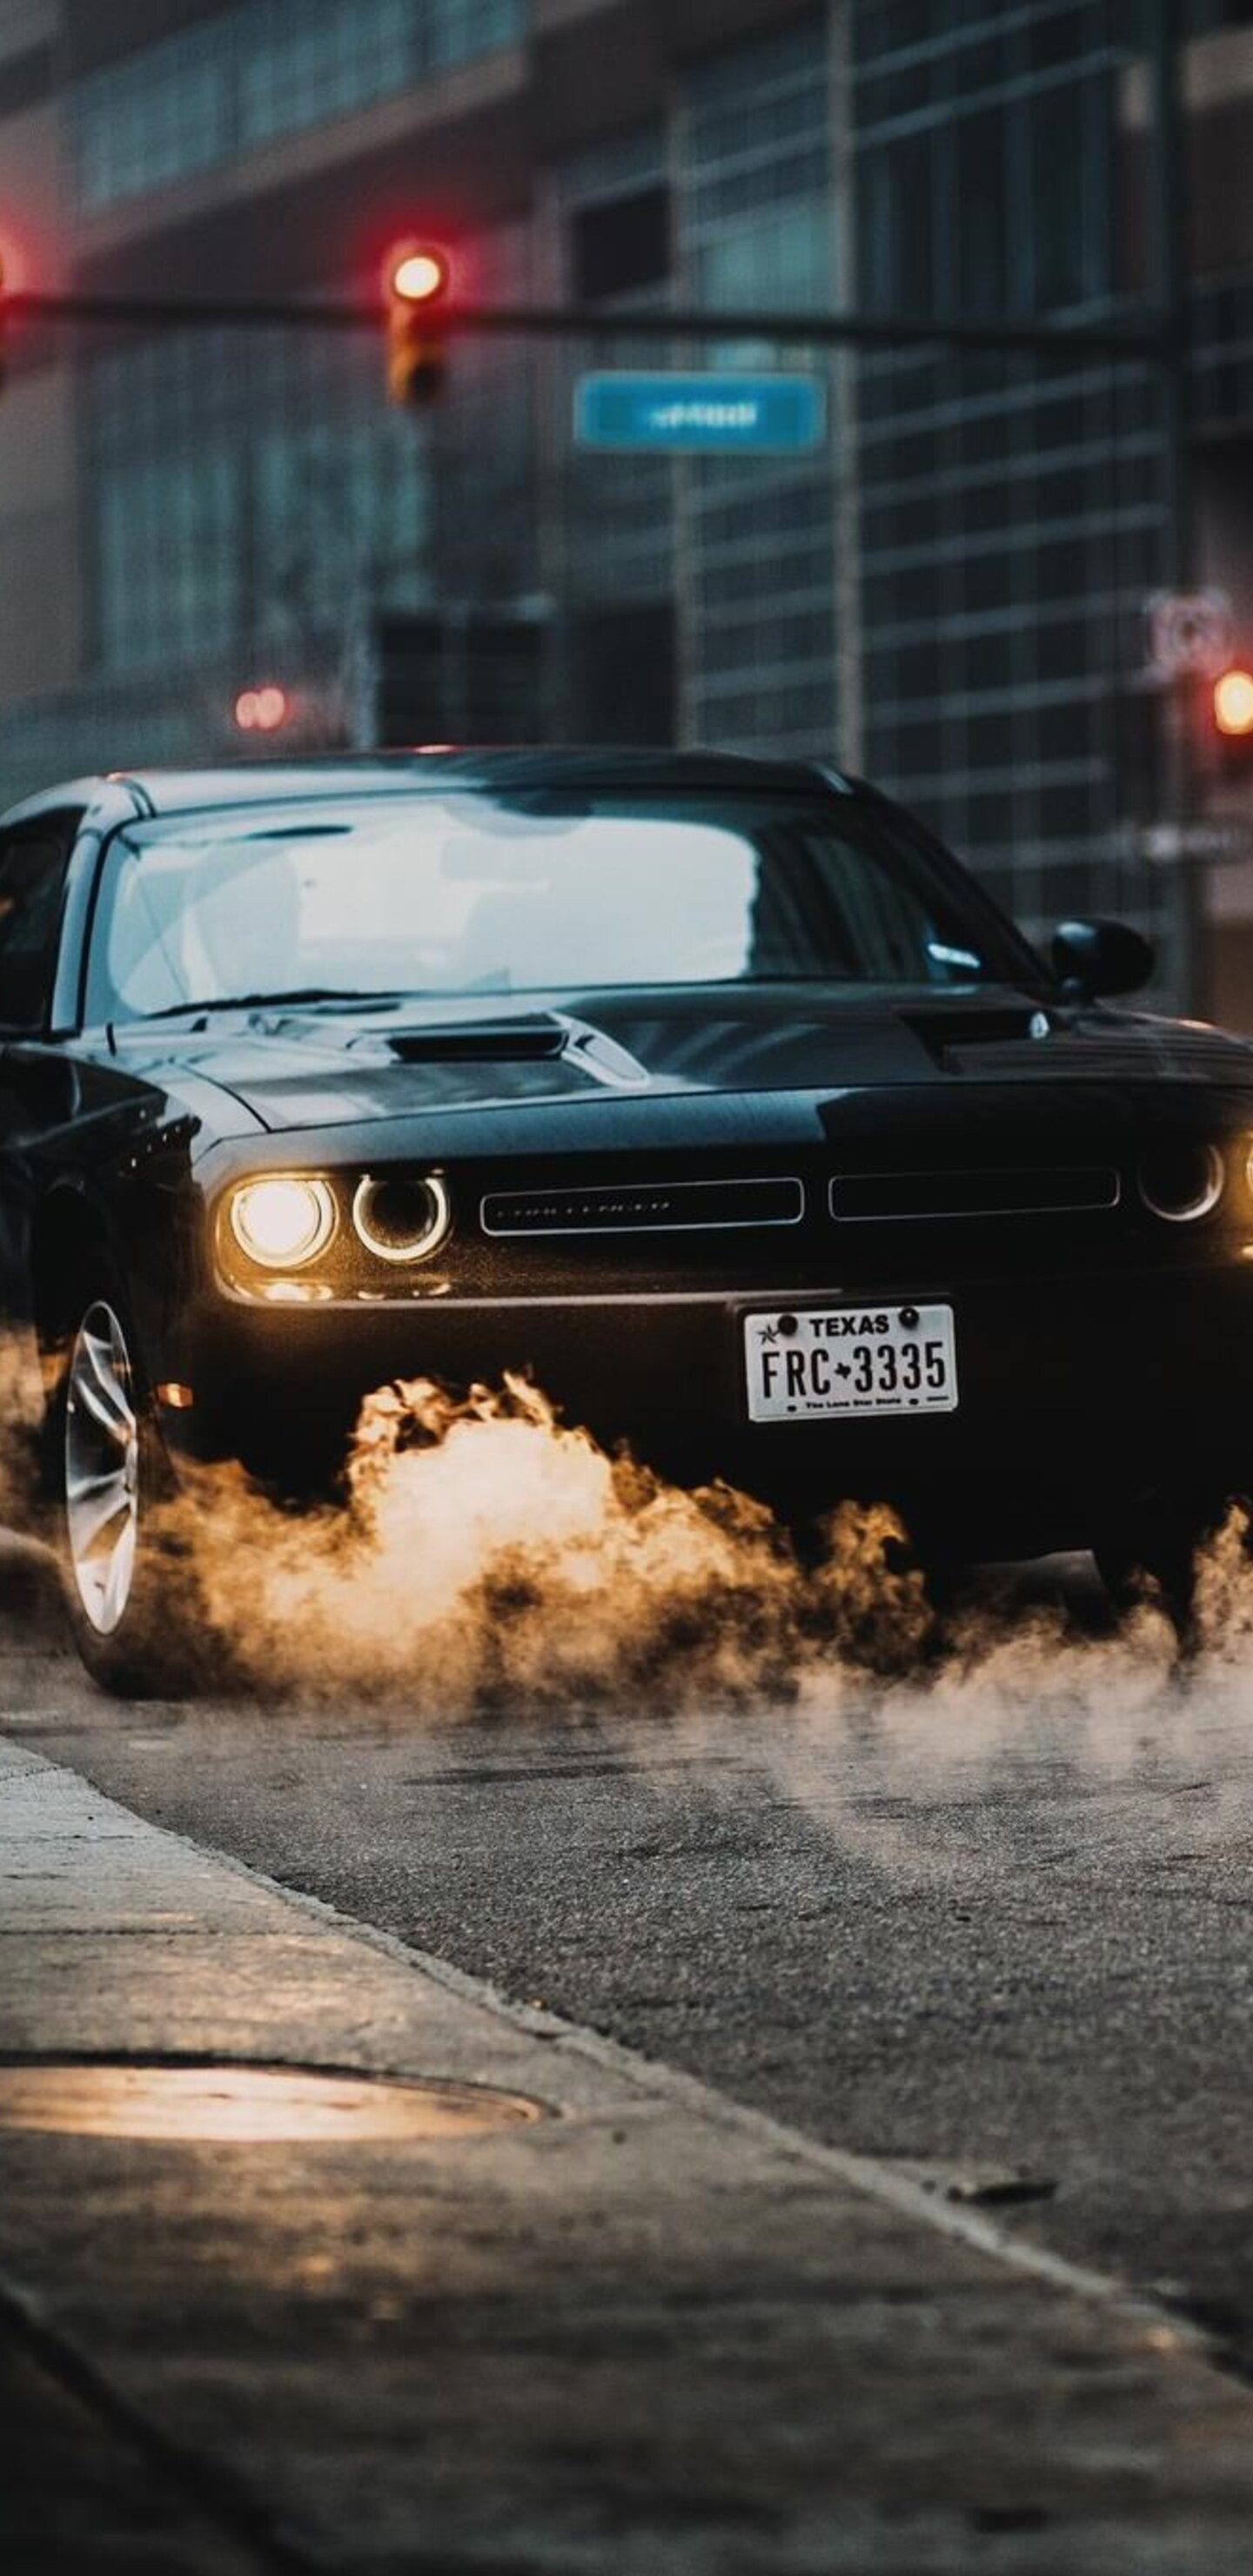 1440x2960 muscle car in city samsung galaxy note 9 8 s9 - Muscle cars wallpaper hd pack ...